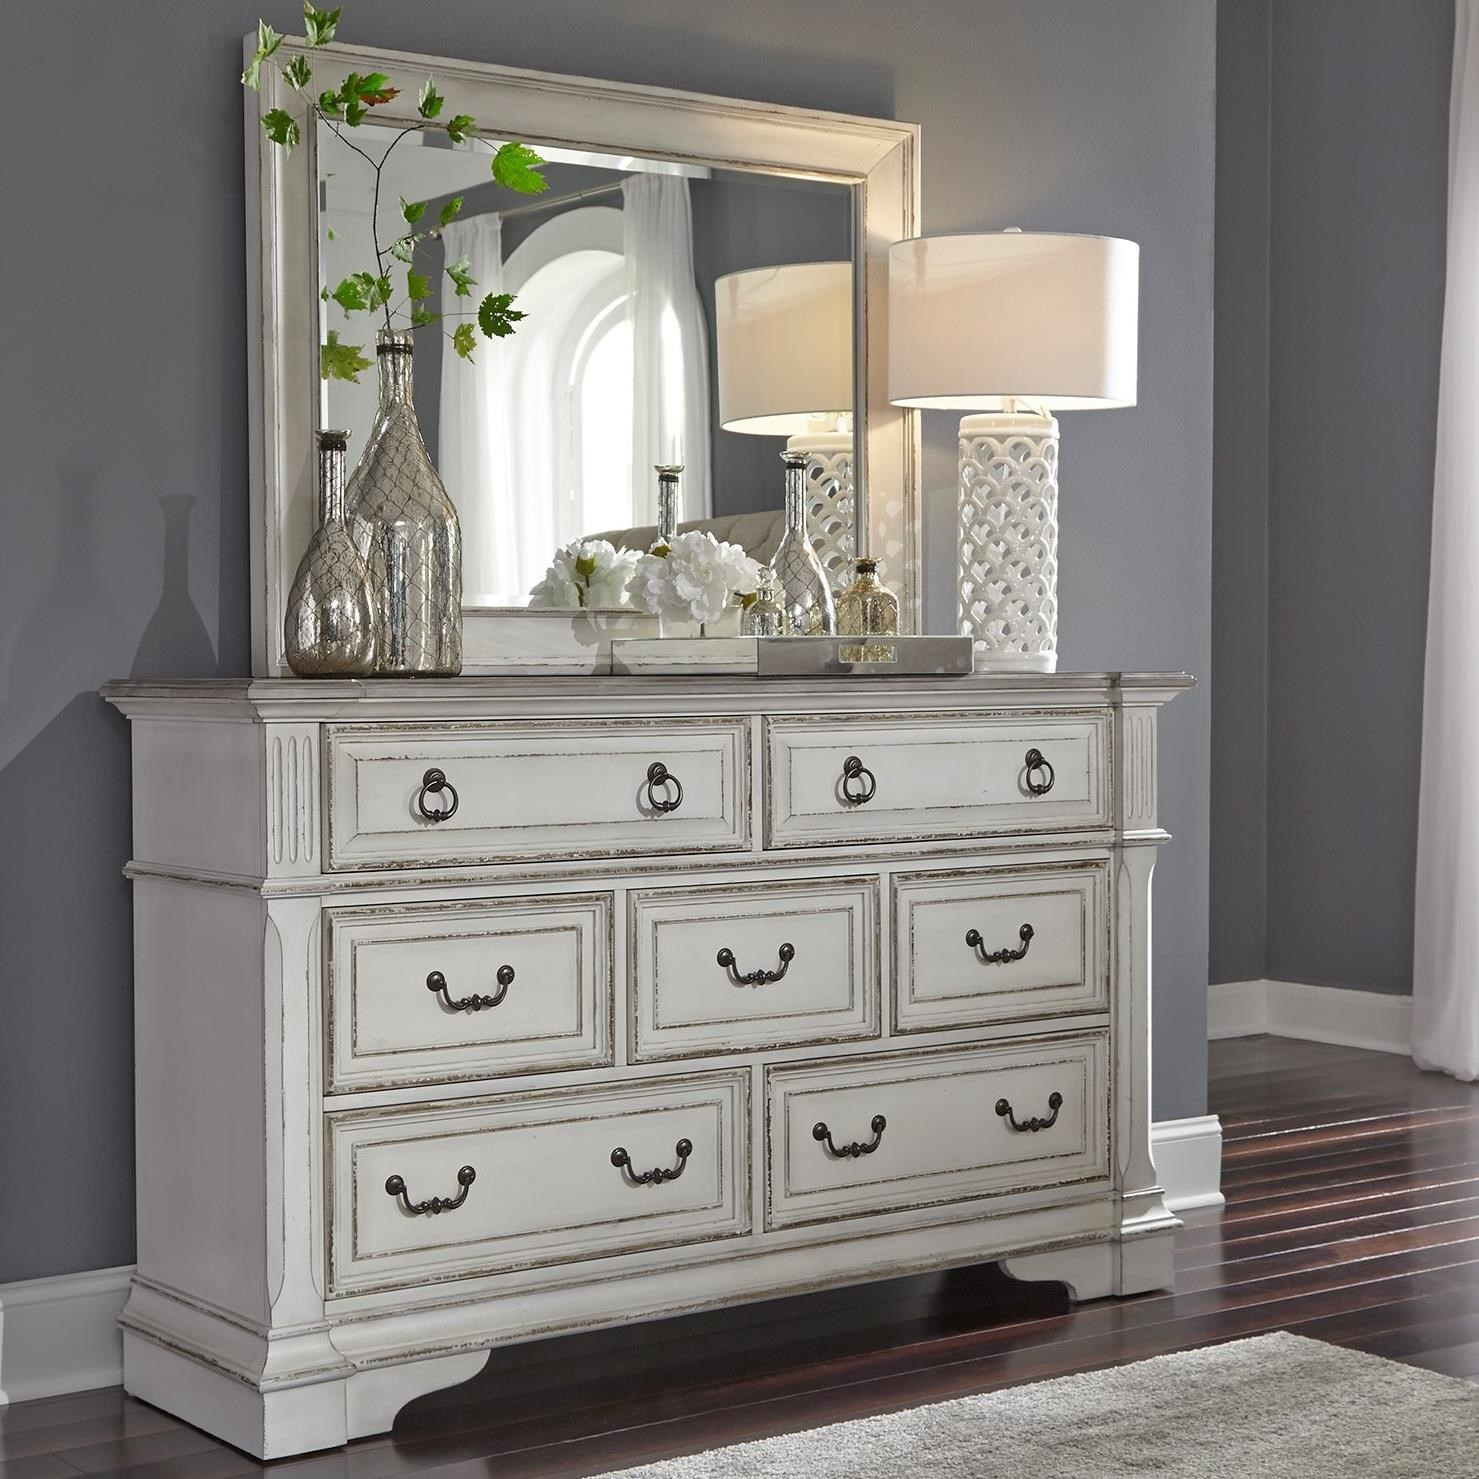 Abbey Park Dresser and Mirror by Liberty Furniture at Lynn's Furniture & Mattress